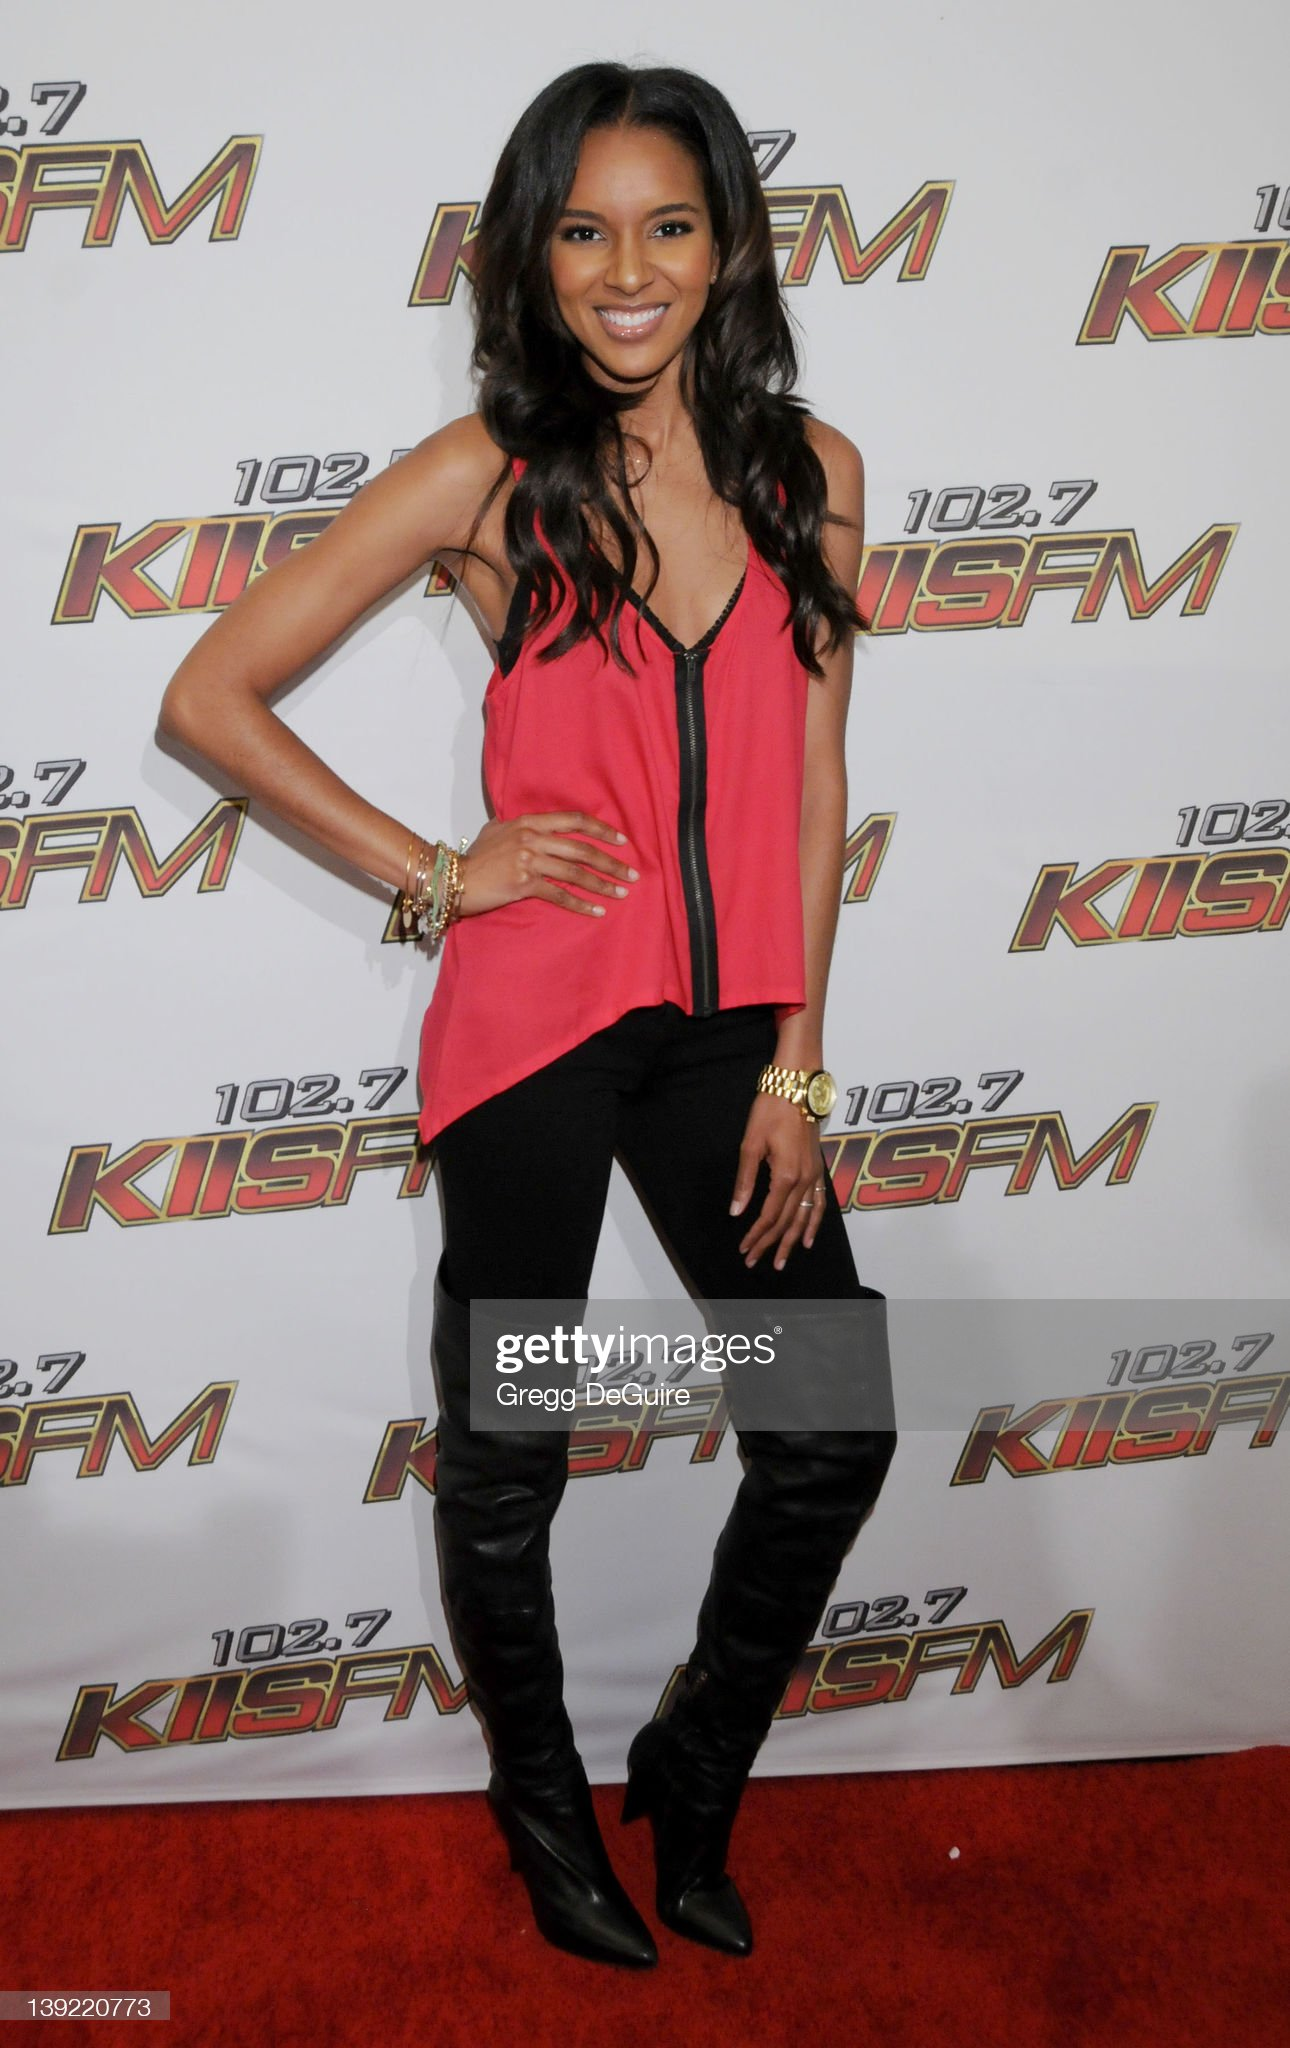 ¿Cuánto mide Elizabeth Mathis? - Real height Elizabeth-mathis-arrives-at-kiis-fms-wango-tango-2011-concert-at-on-picture-id139220773?s=2048x2048